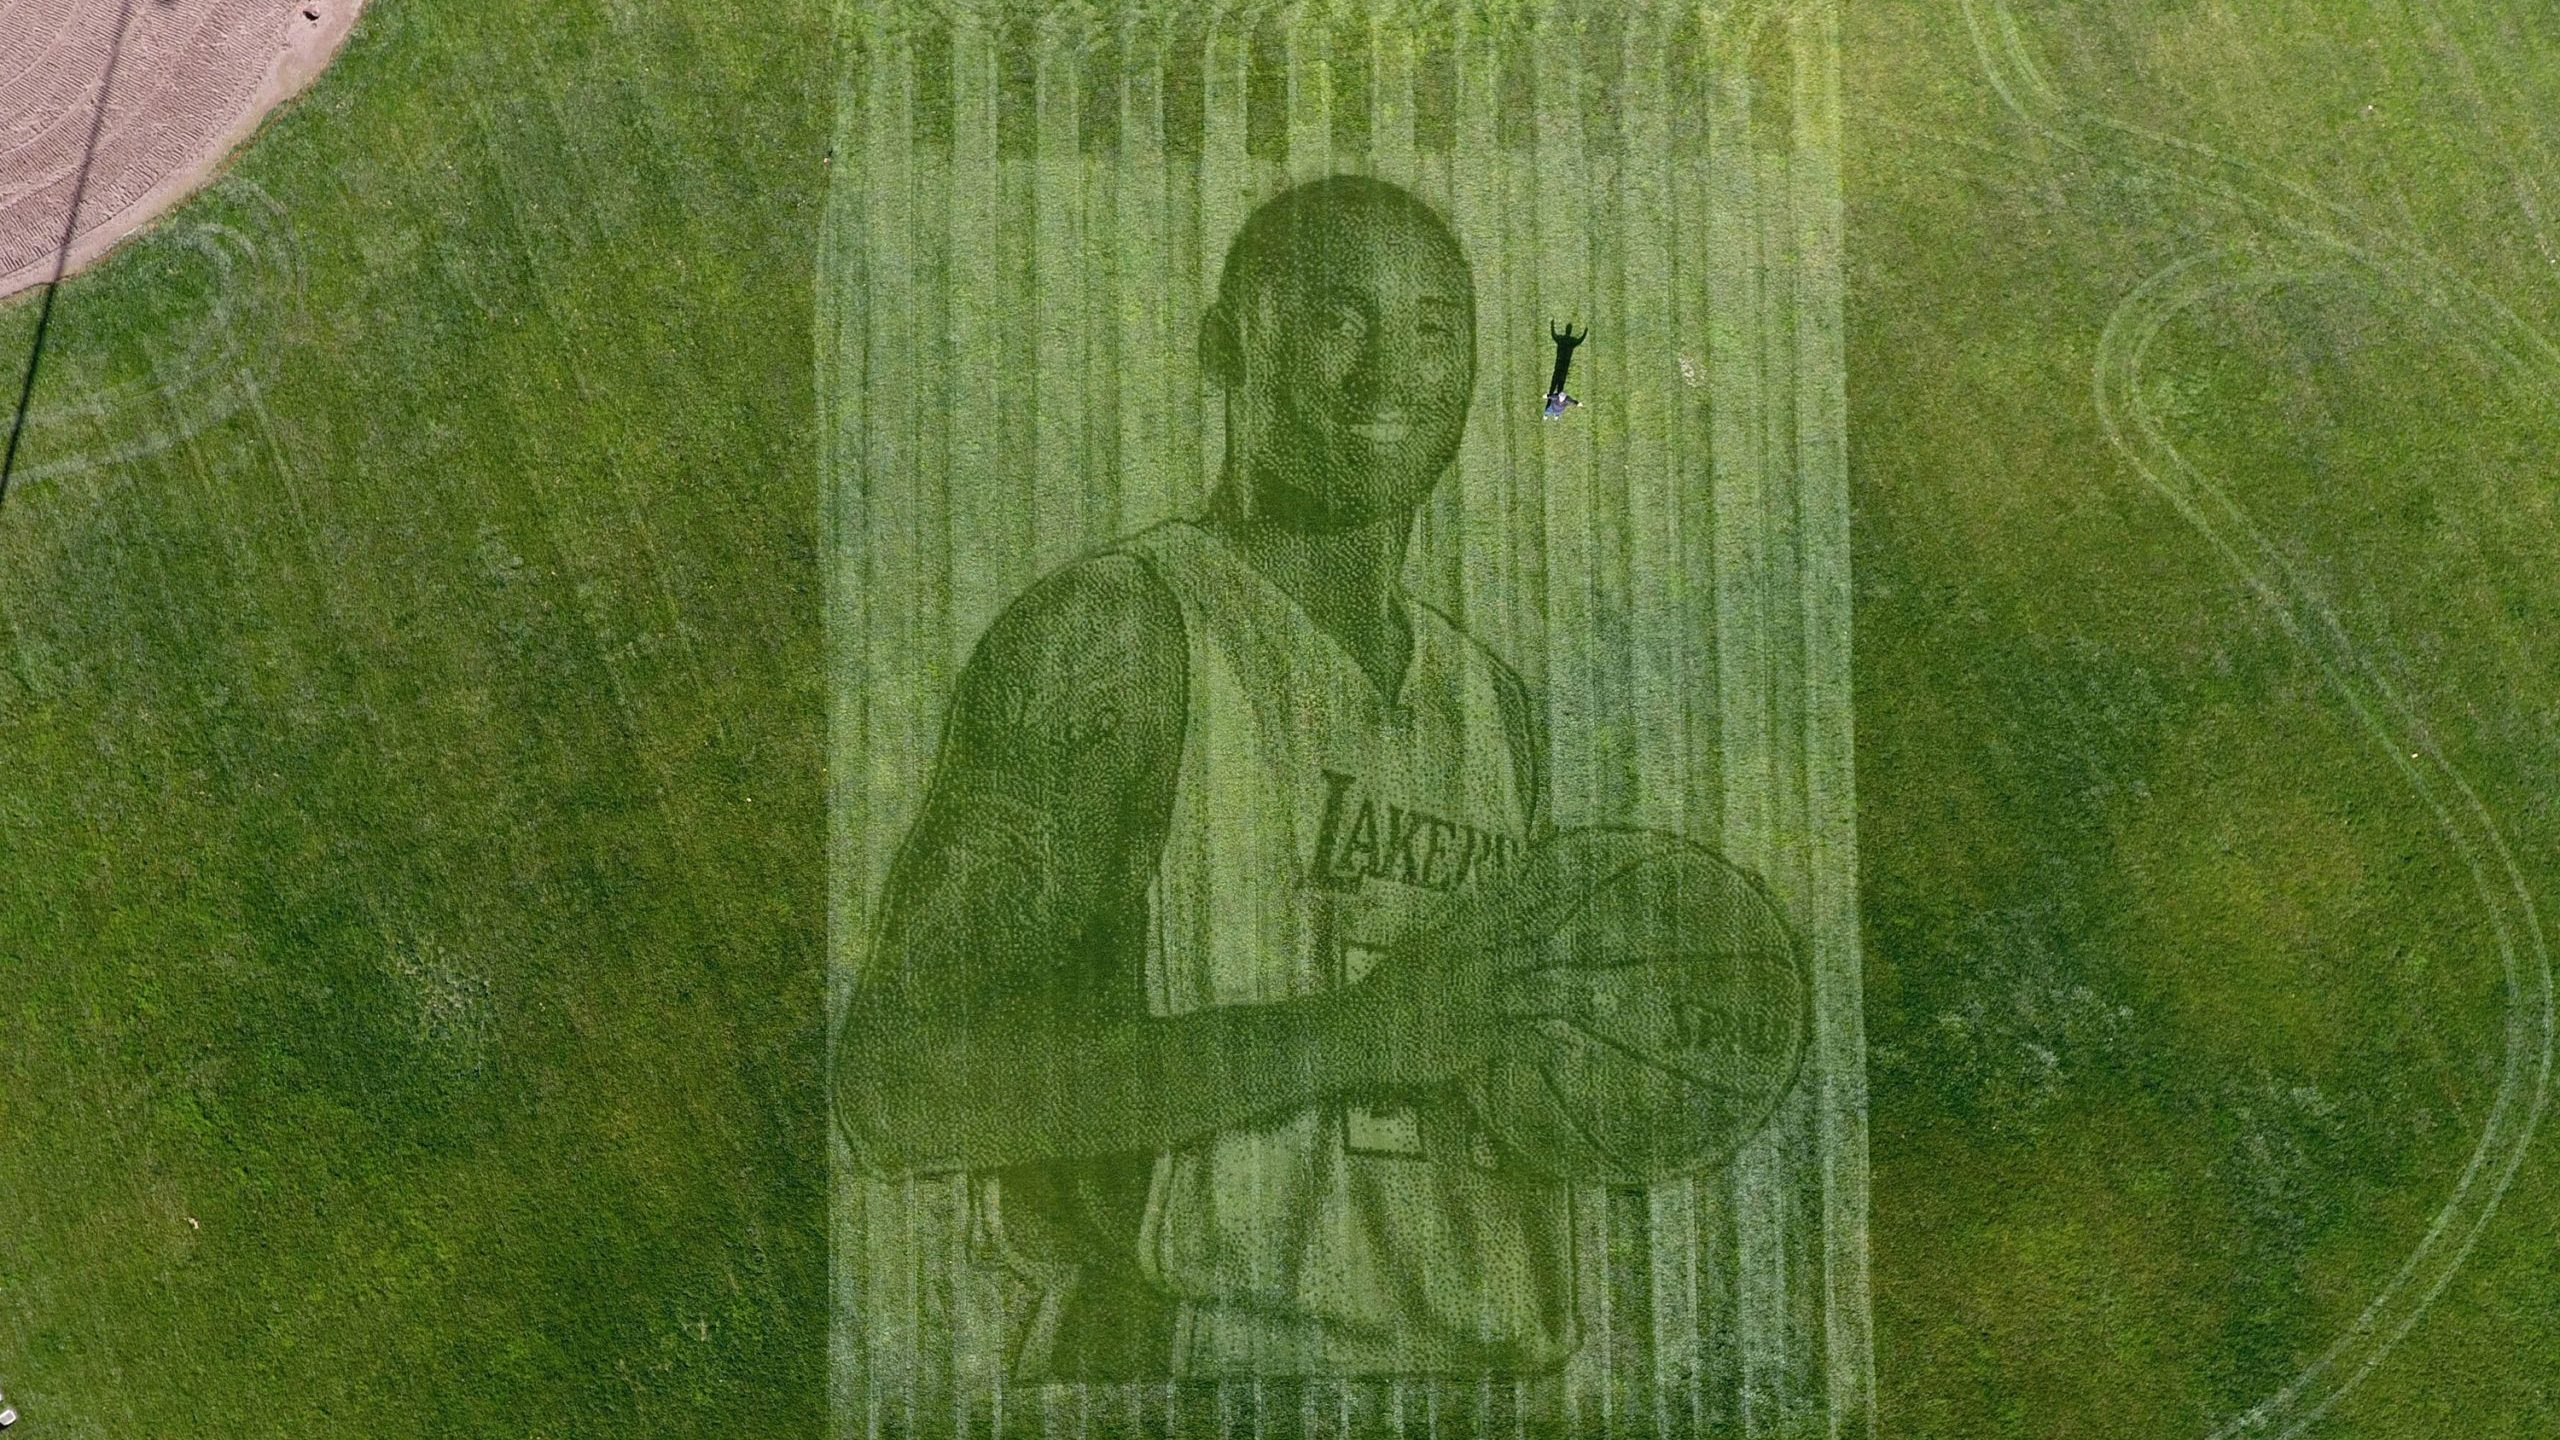 Kelli Pearson and her husband, Pete Davis, created a 115-foot tall mural of Kobe Bryant in a grass field in California. (Credit: Kelli Pearson)